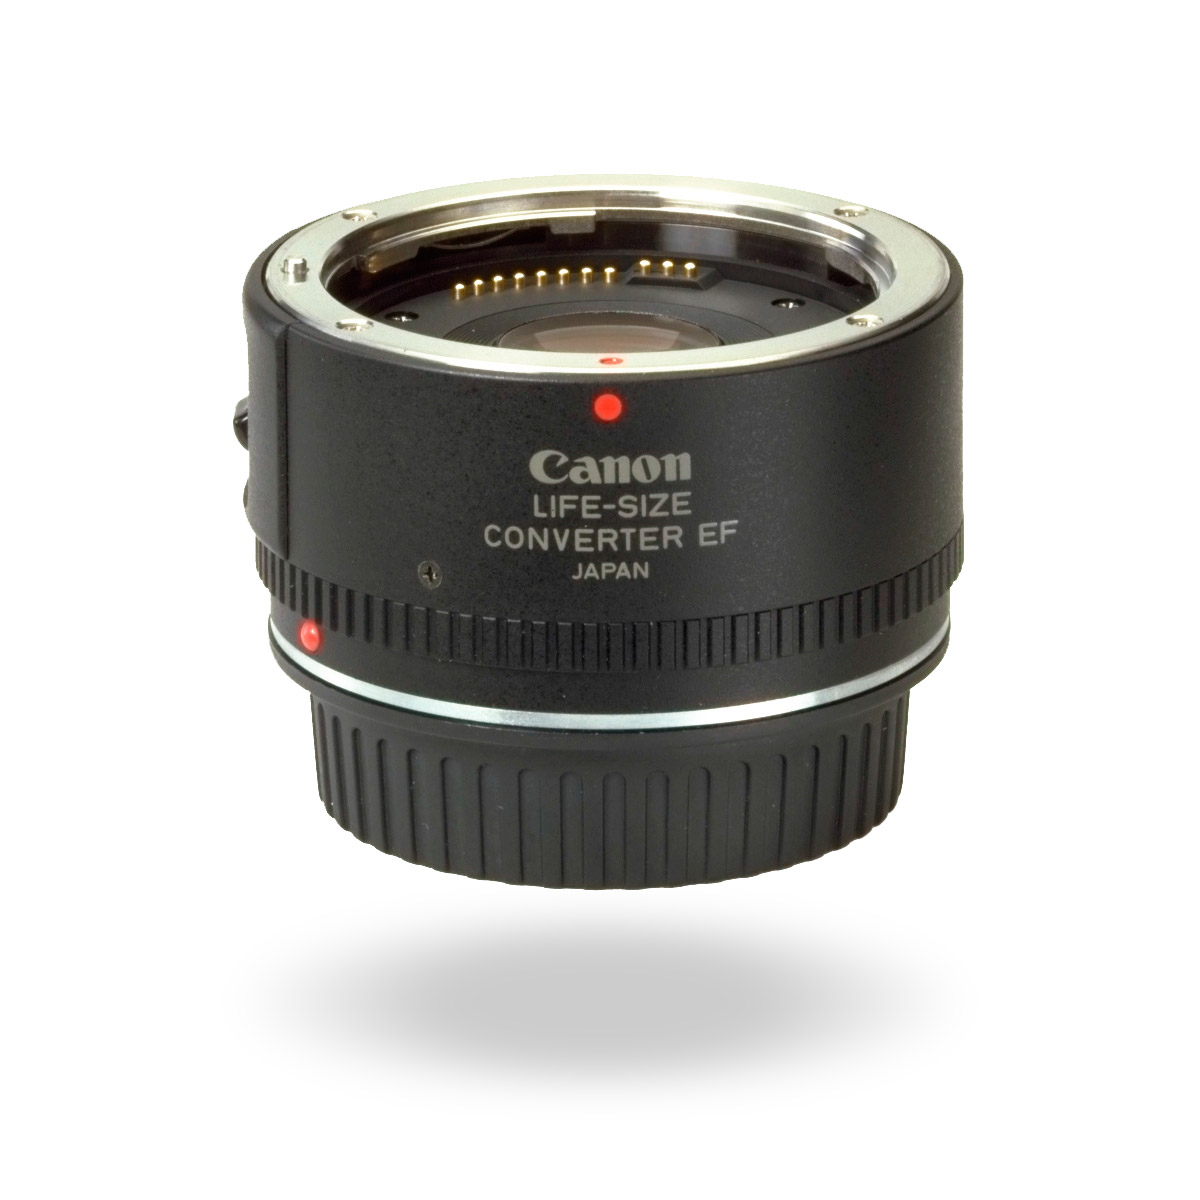 Canon Life-Size Converter EF front